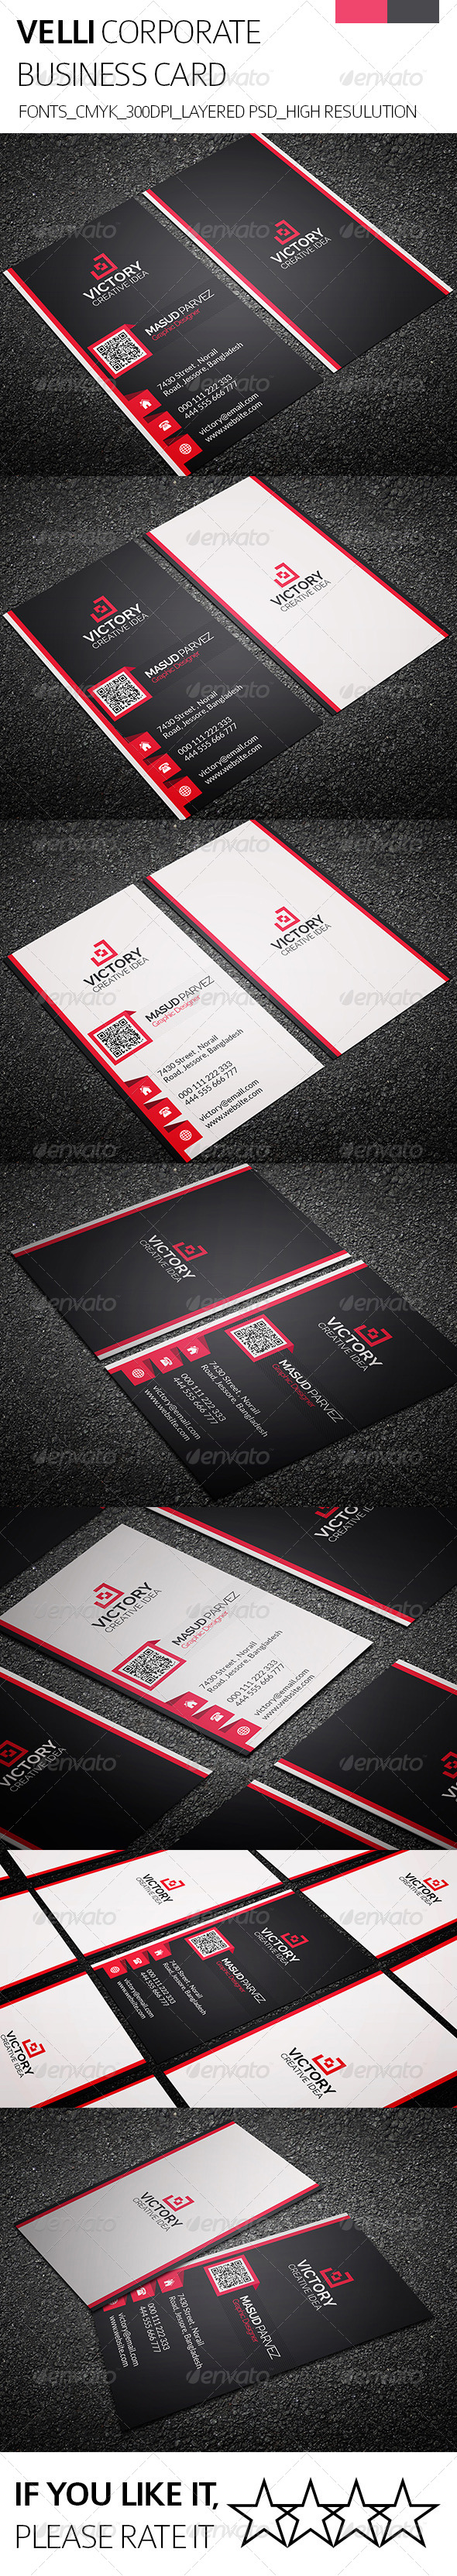 GraphicRiver Velli & Corporate Business Card 8406975